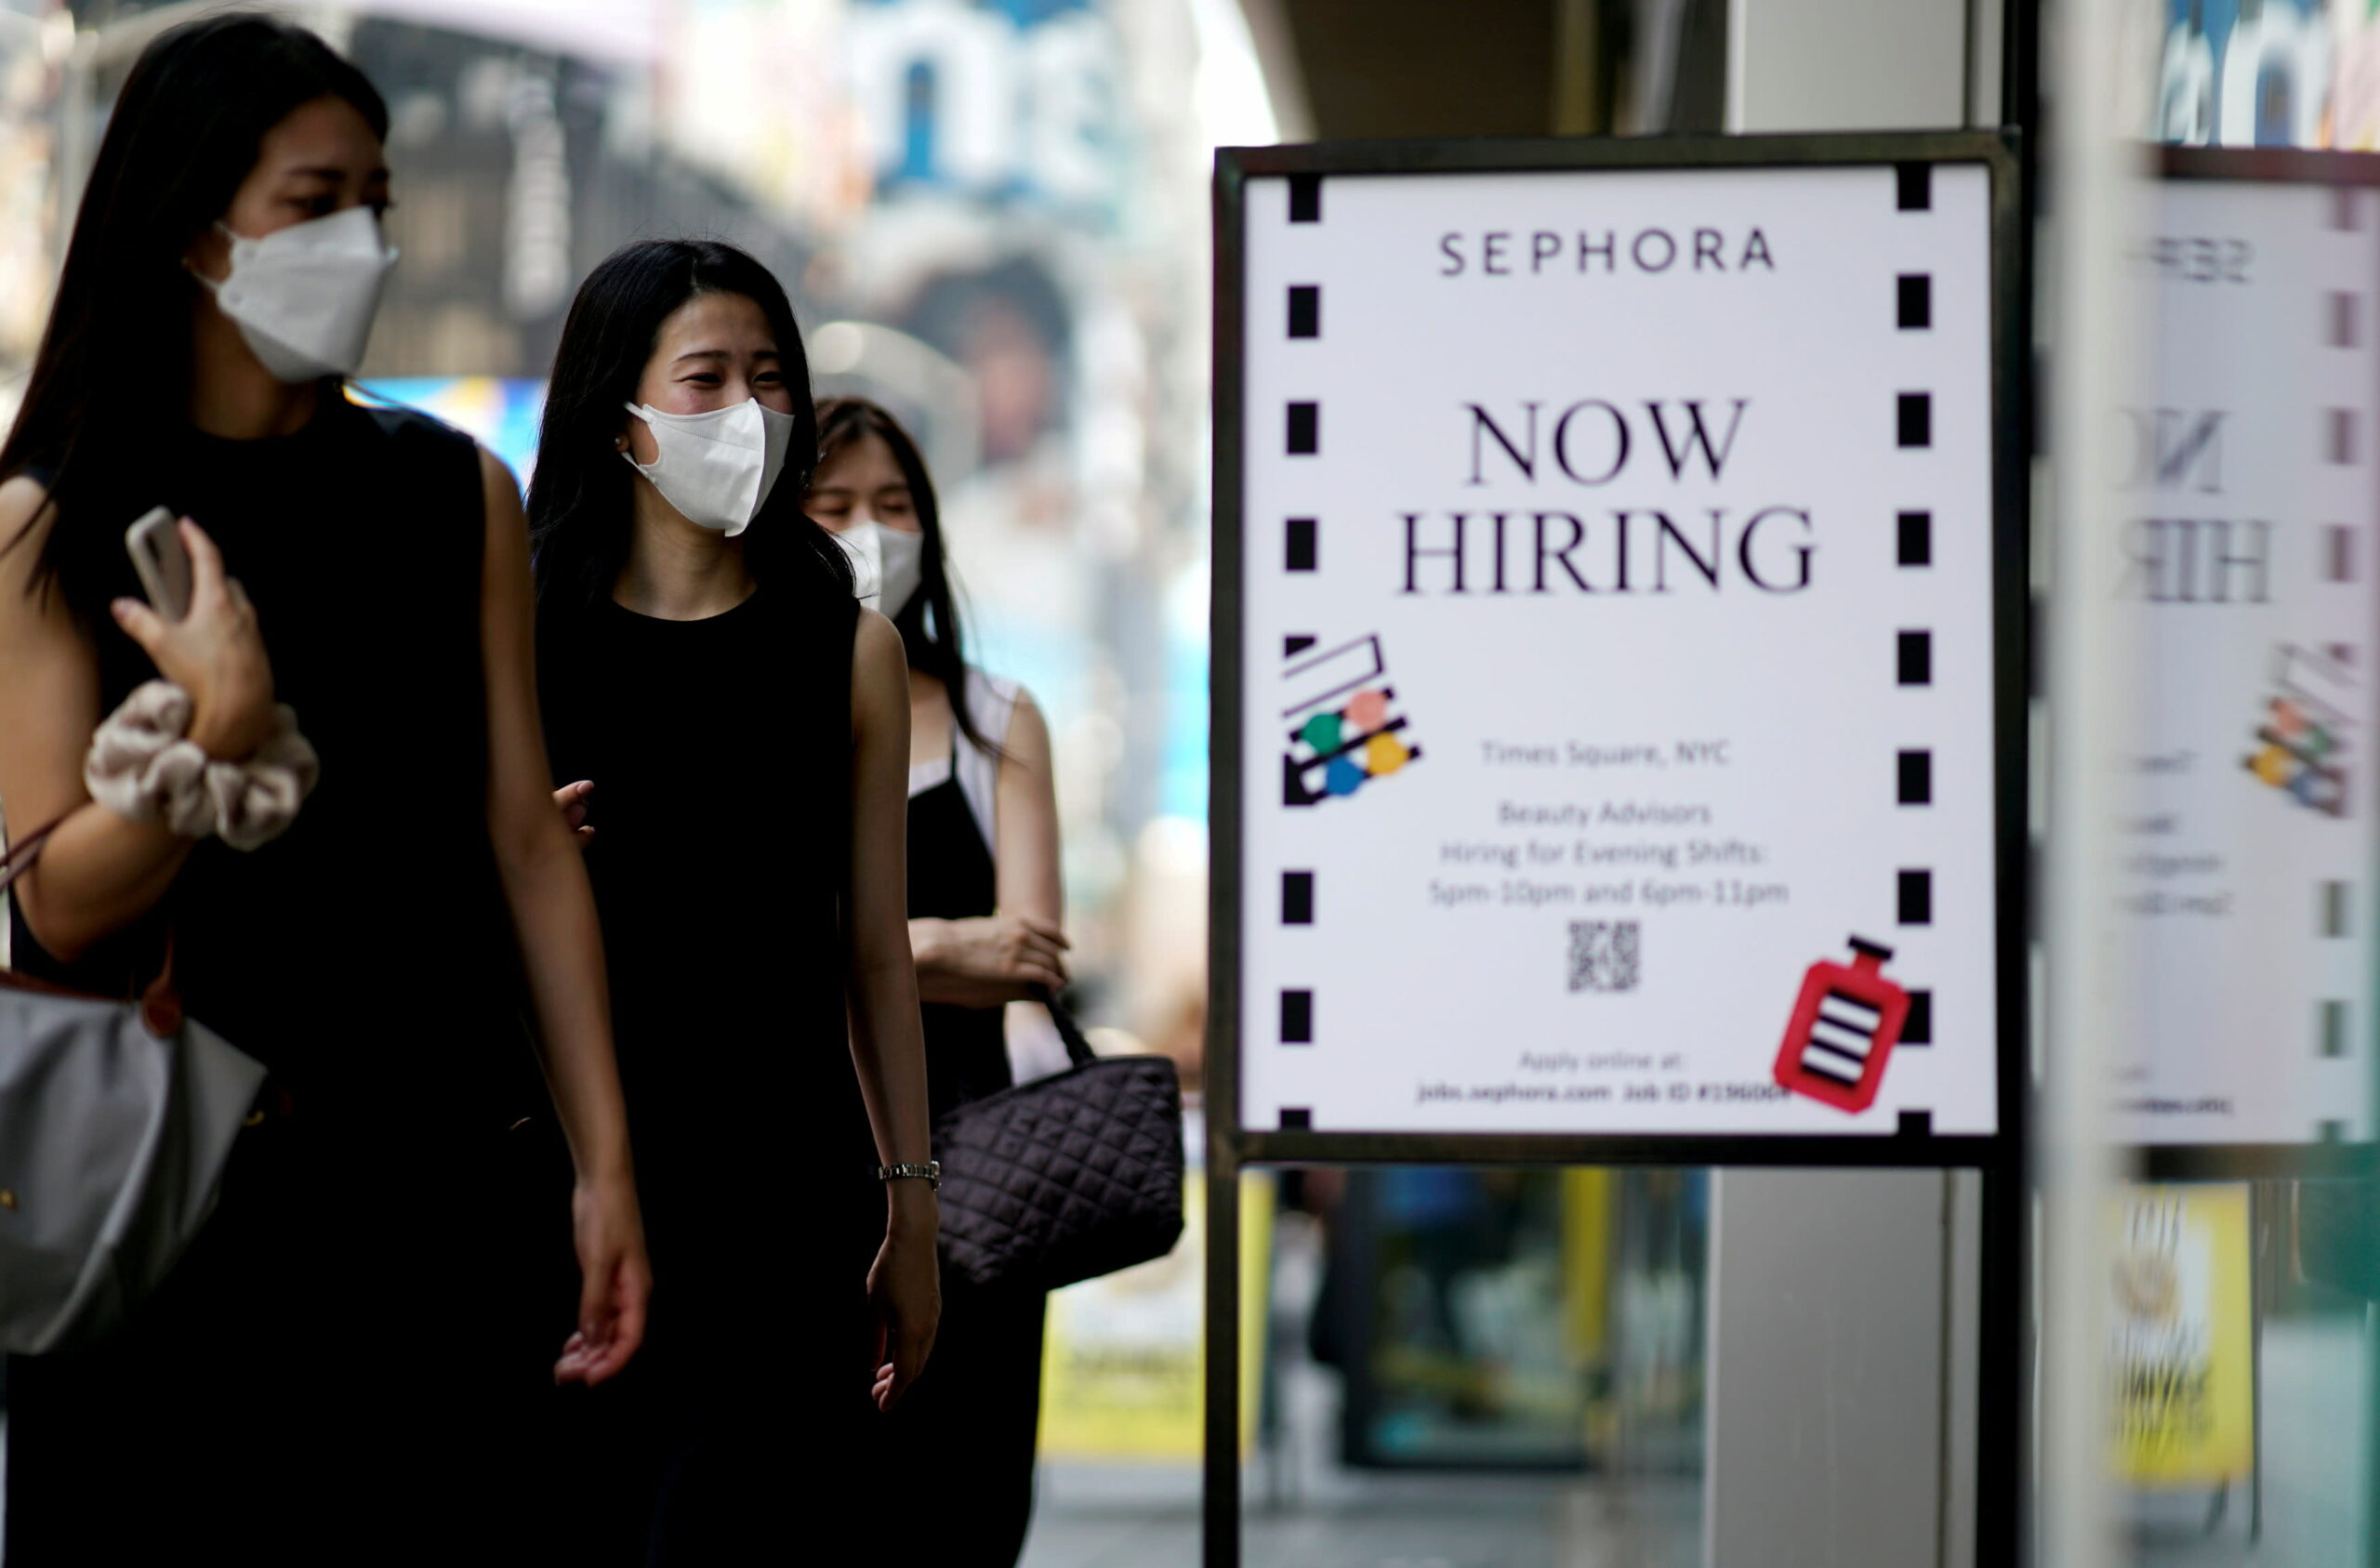 Jobless claims fall below 300,000 for the first time since the pandemic began